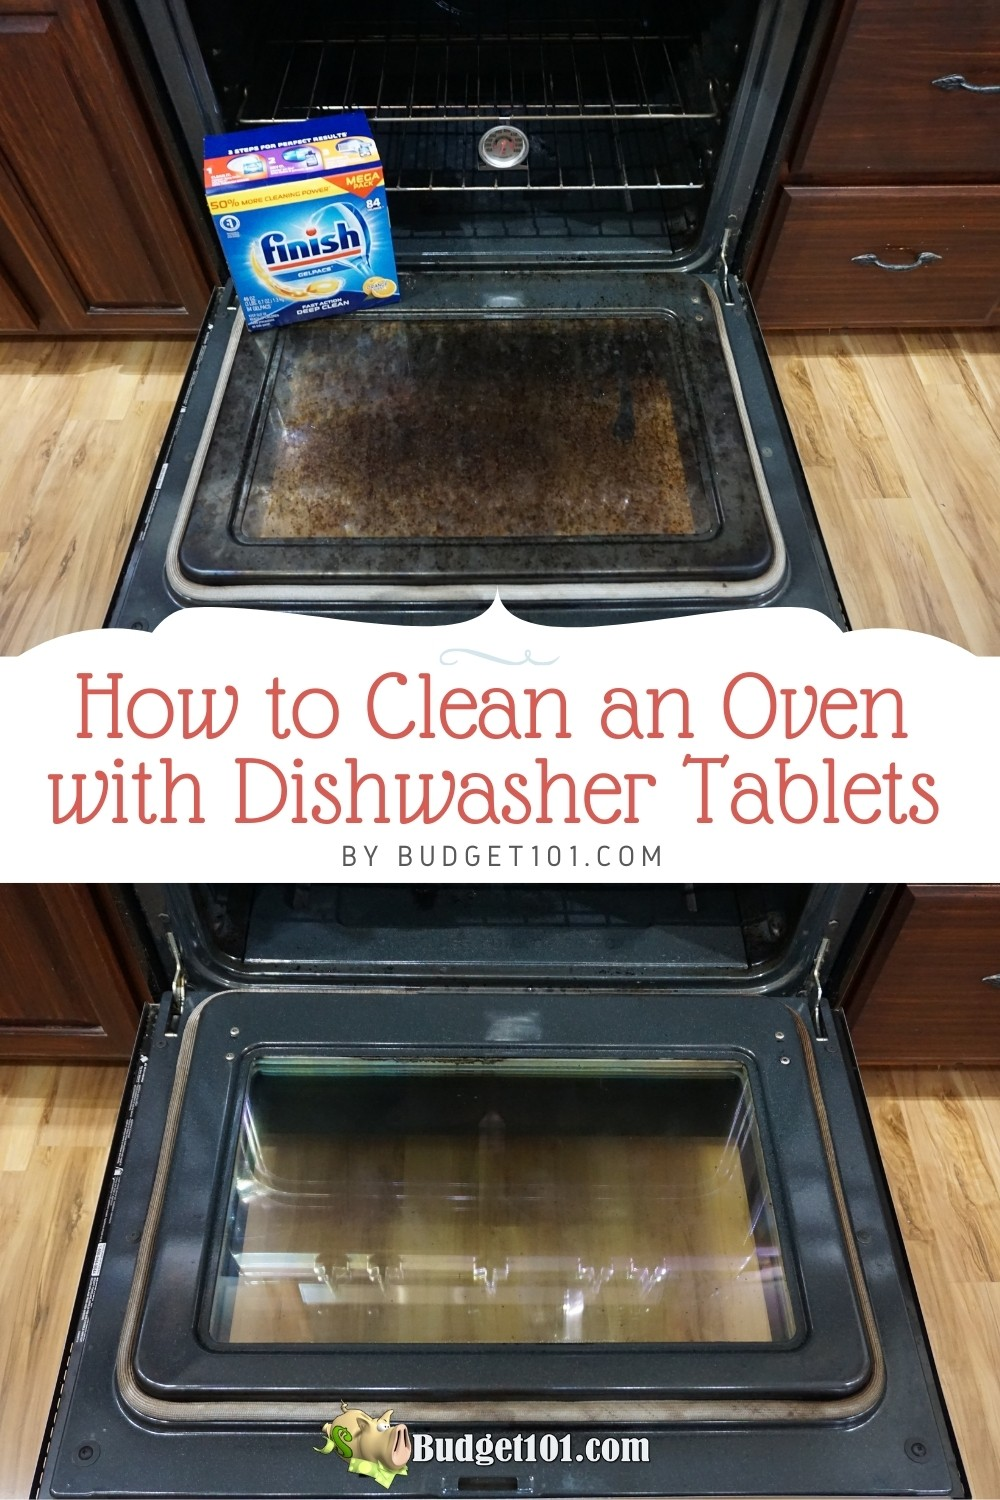 How to Clean an Oven with a Dishwasher Tablet- completely scrub free oven cleaning trick with no smell or fumes! #LifeHacks #Oven #CleaningTricks #cleaningHacks #FinishTabs #Finish #DIY #DirtCheap #Budget101 #TipsnTricks